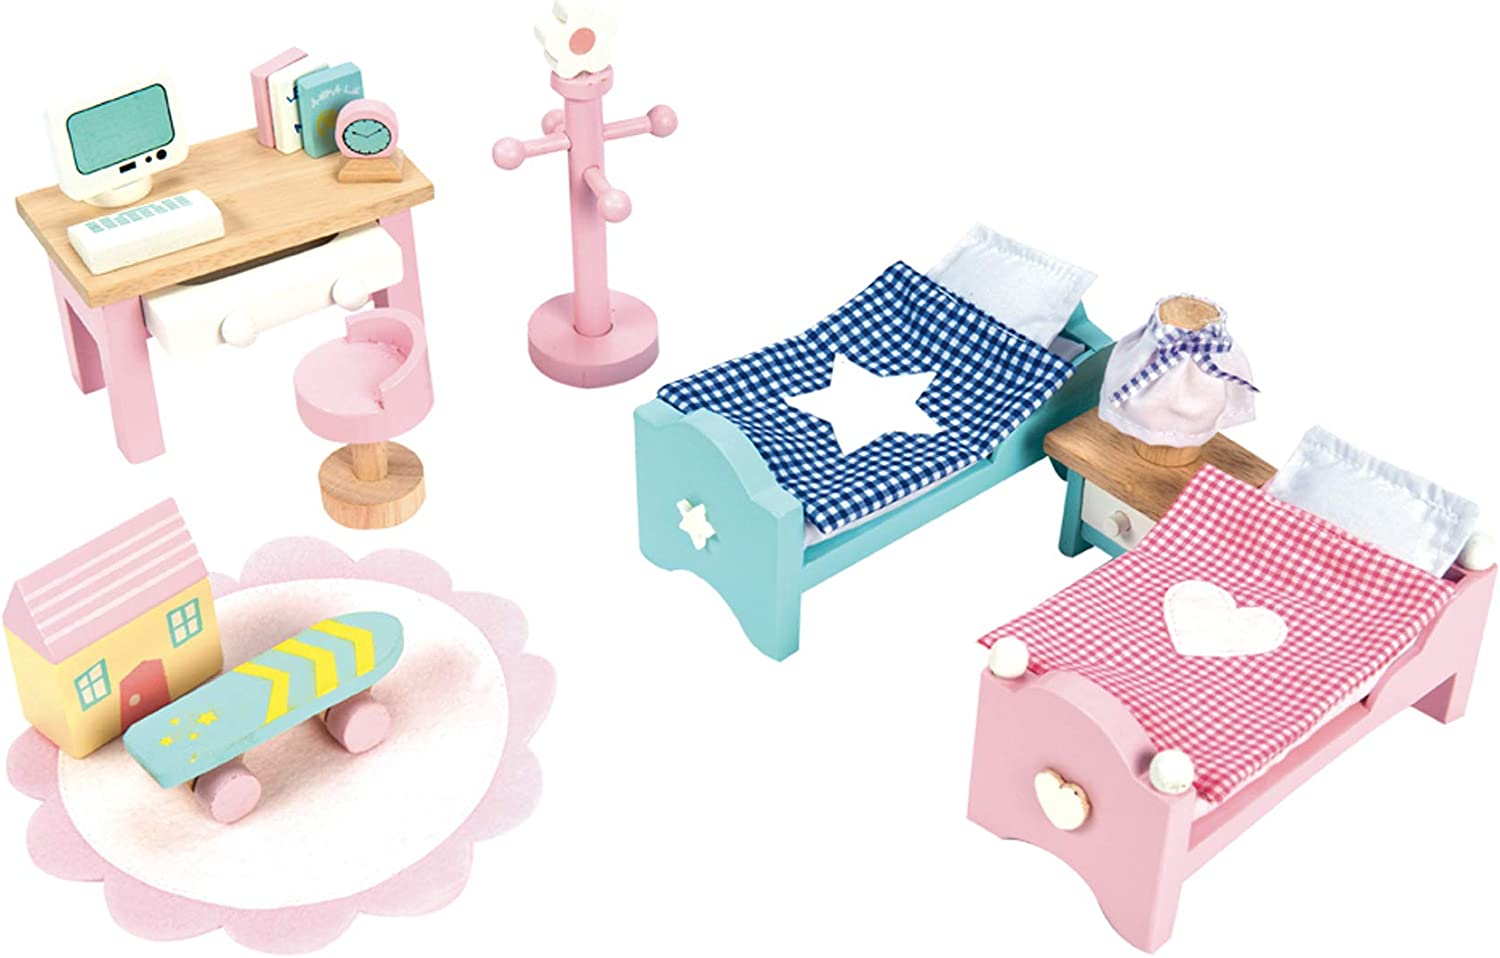 Le Toy Van Daisylane Children\'s Bedroom Premium Wooden Toys for Kids Ages 3  years & Up